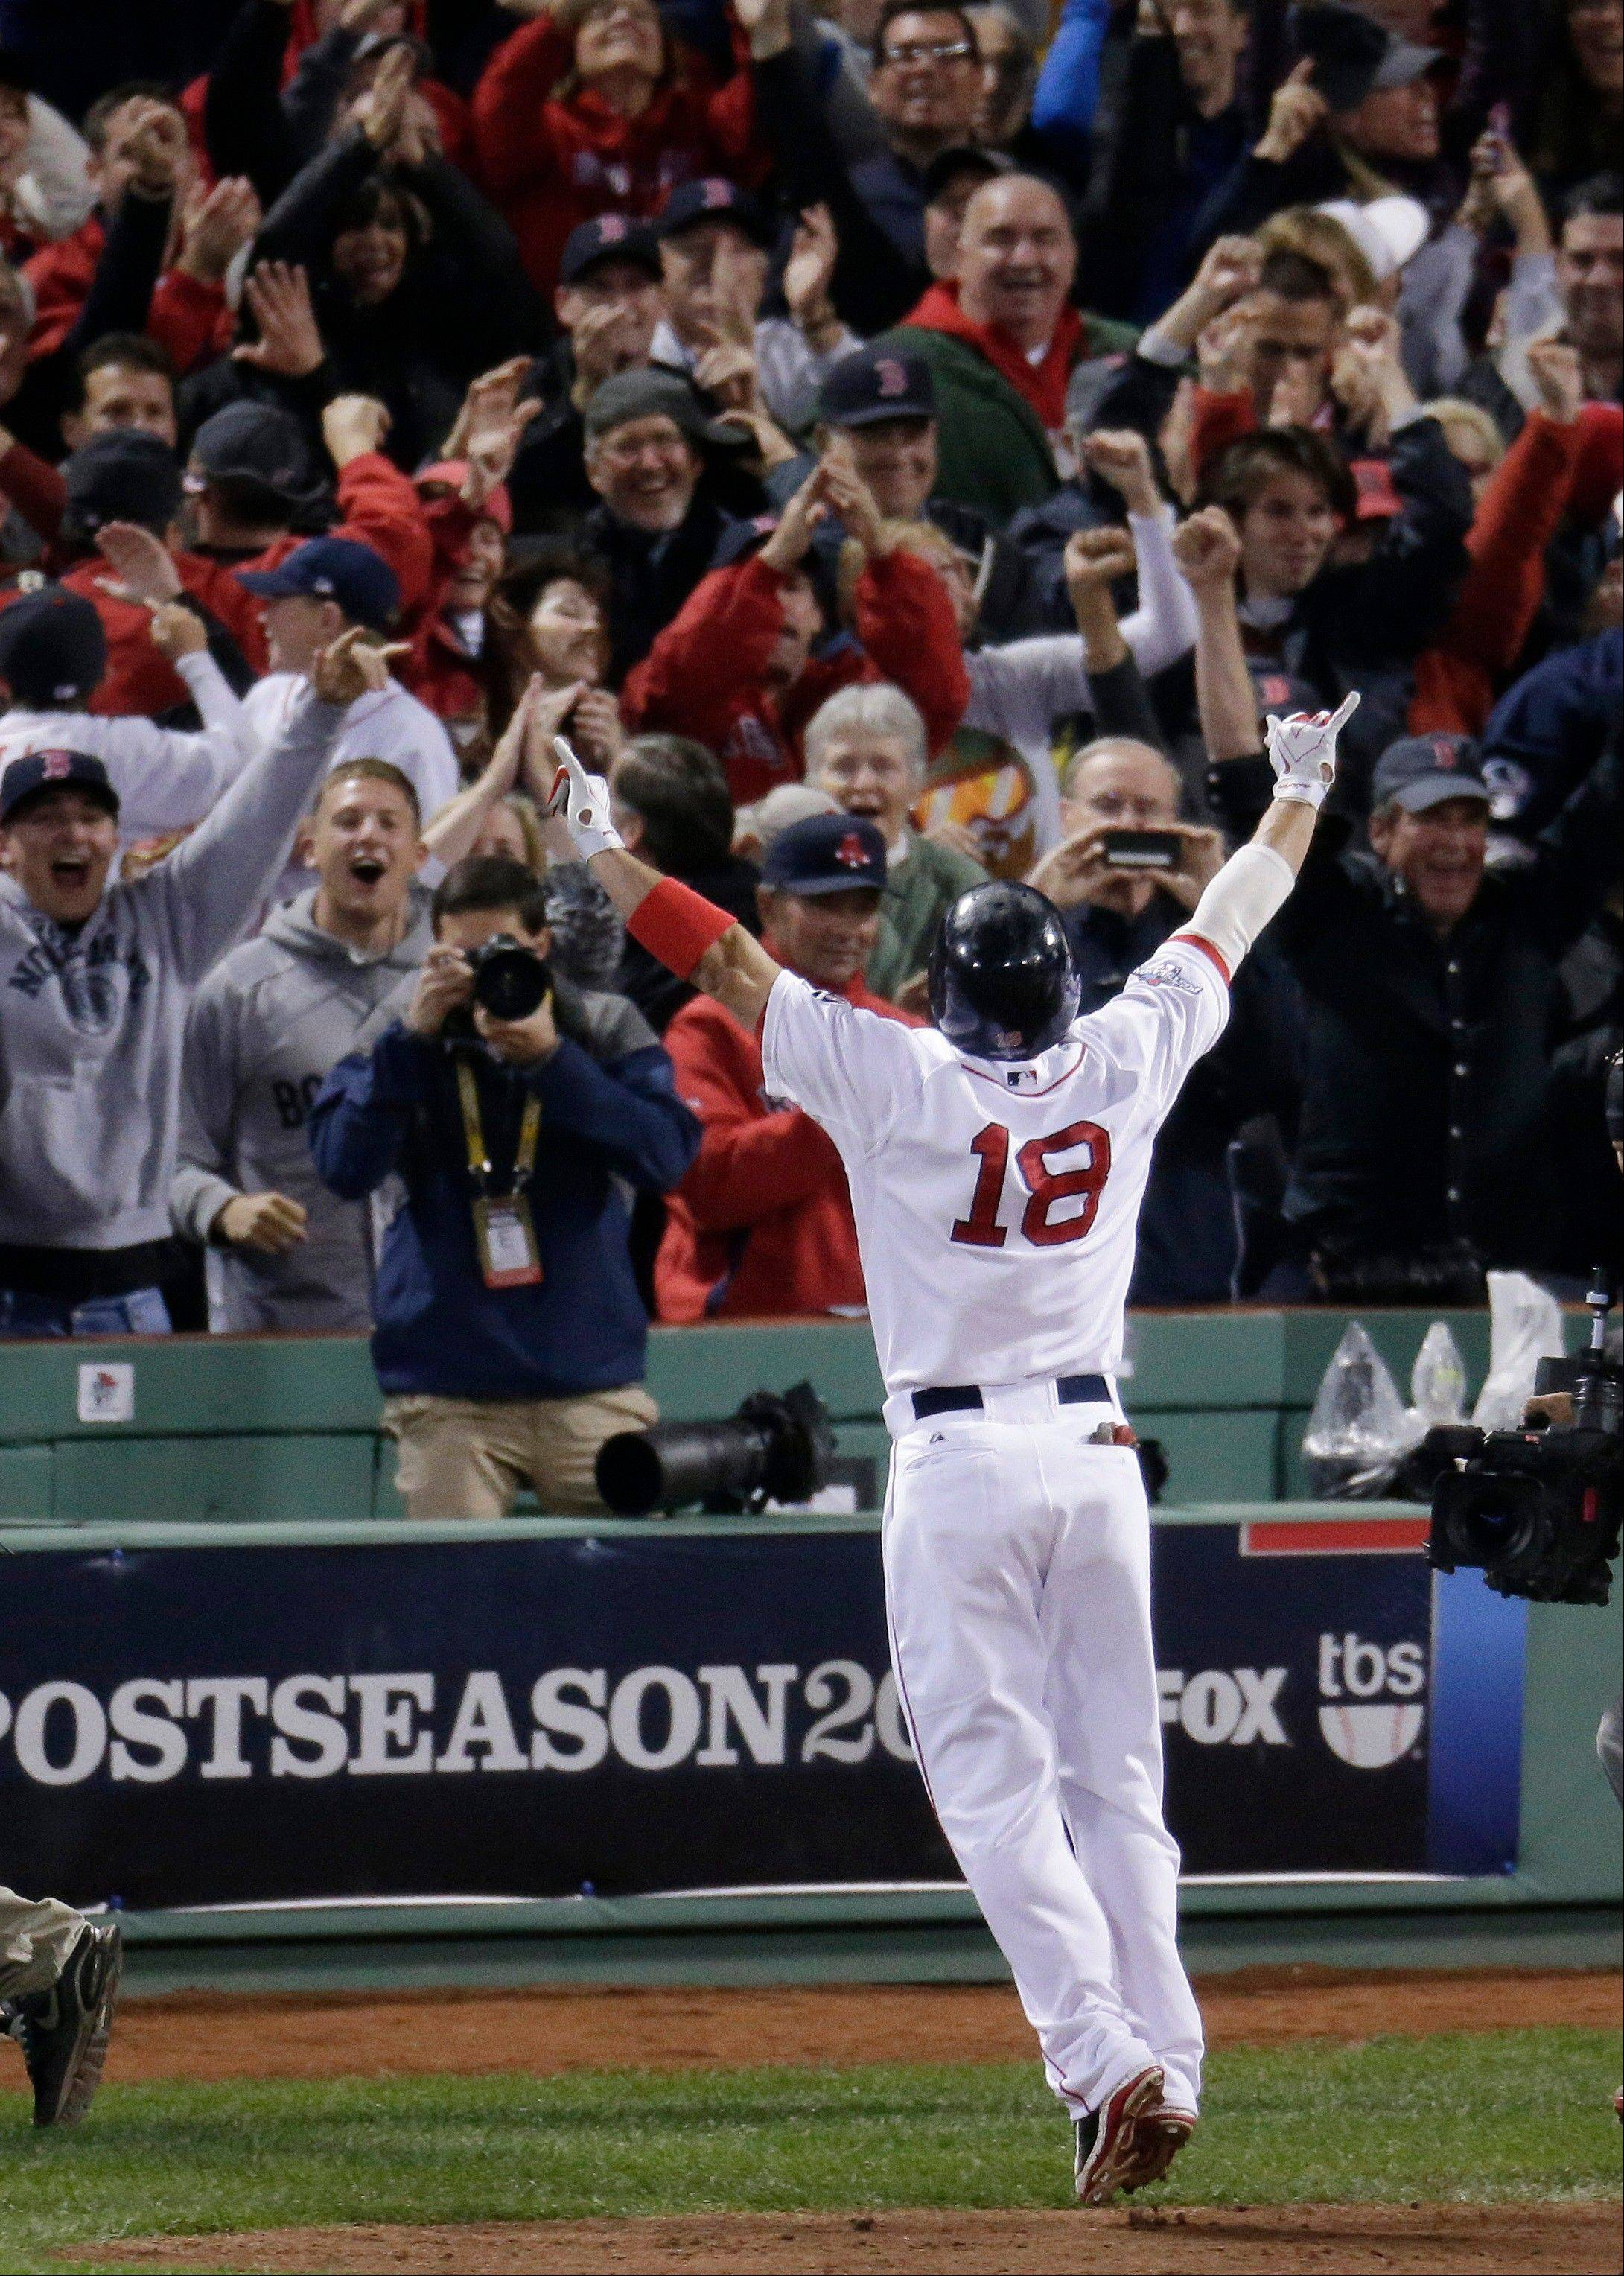 Boston Red Sox's Shane Victorino (18) celebrates his grand slam in front of fans in the seventh inning during Game 6 of the American League baseball championship series.